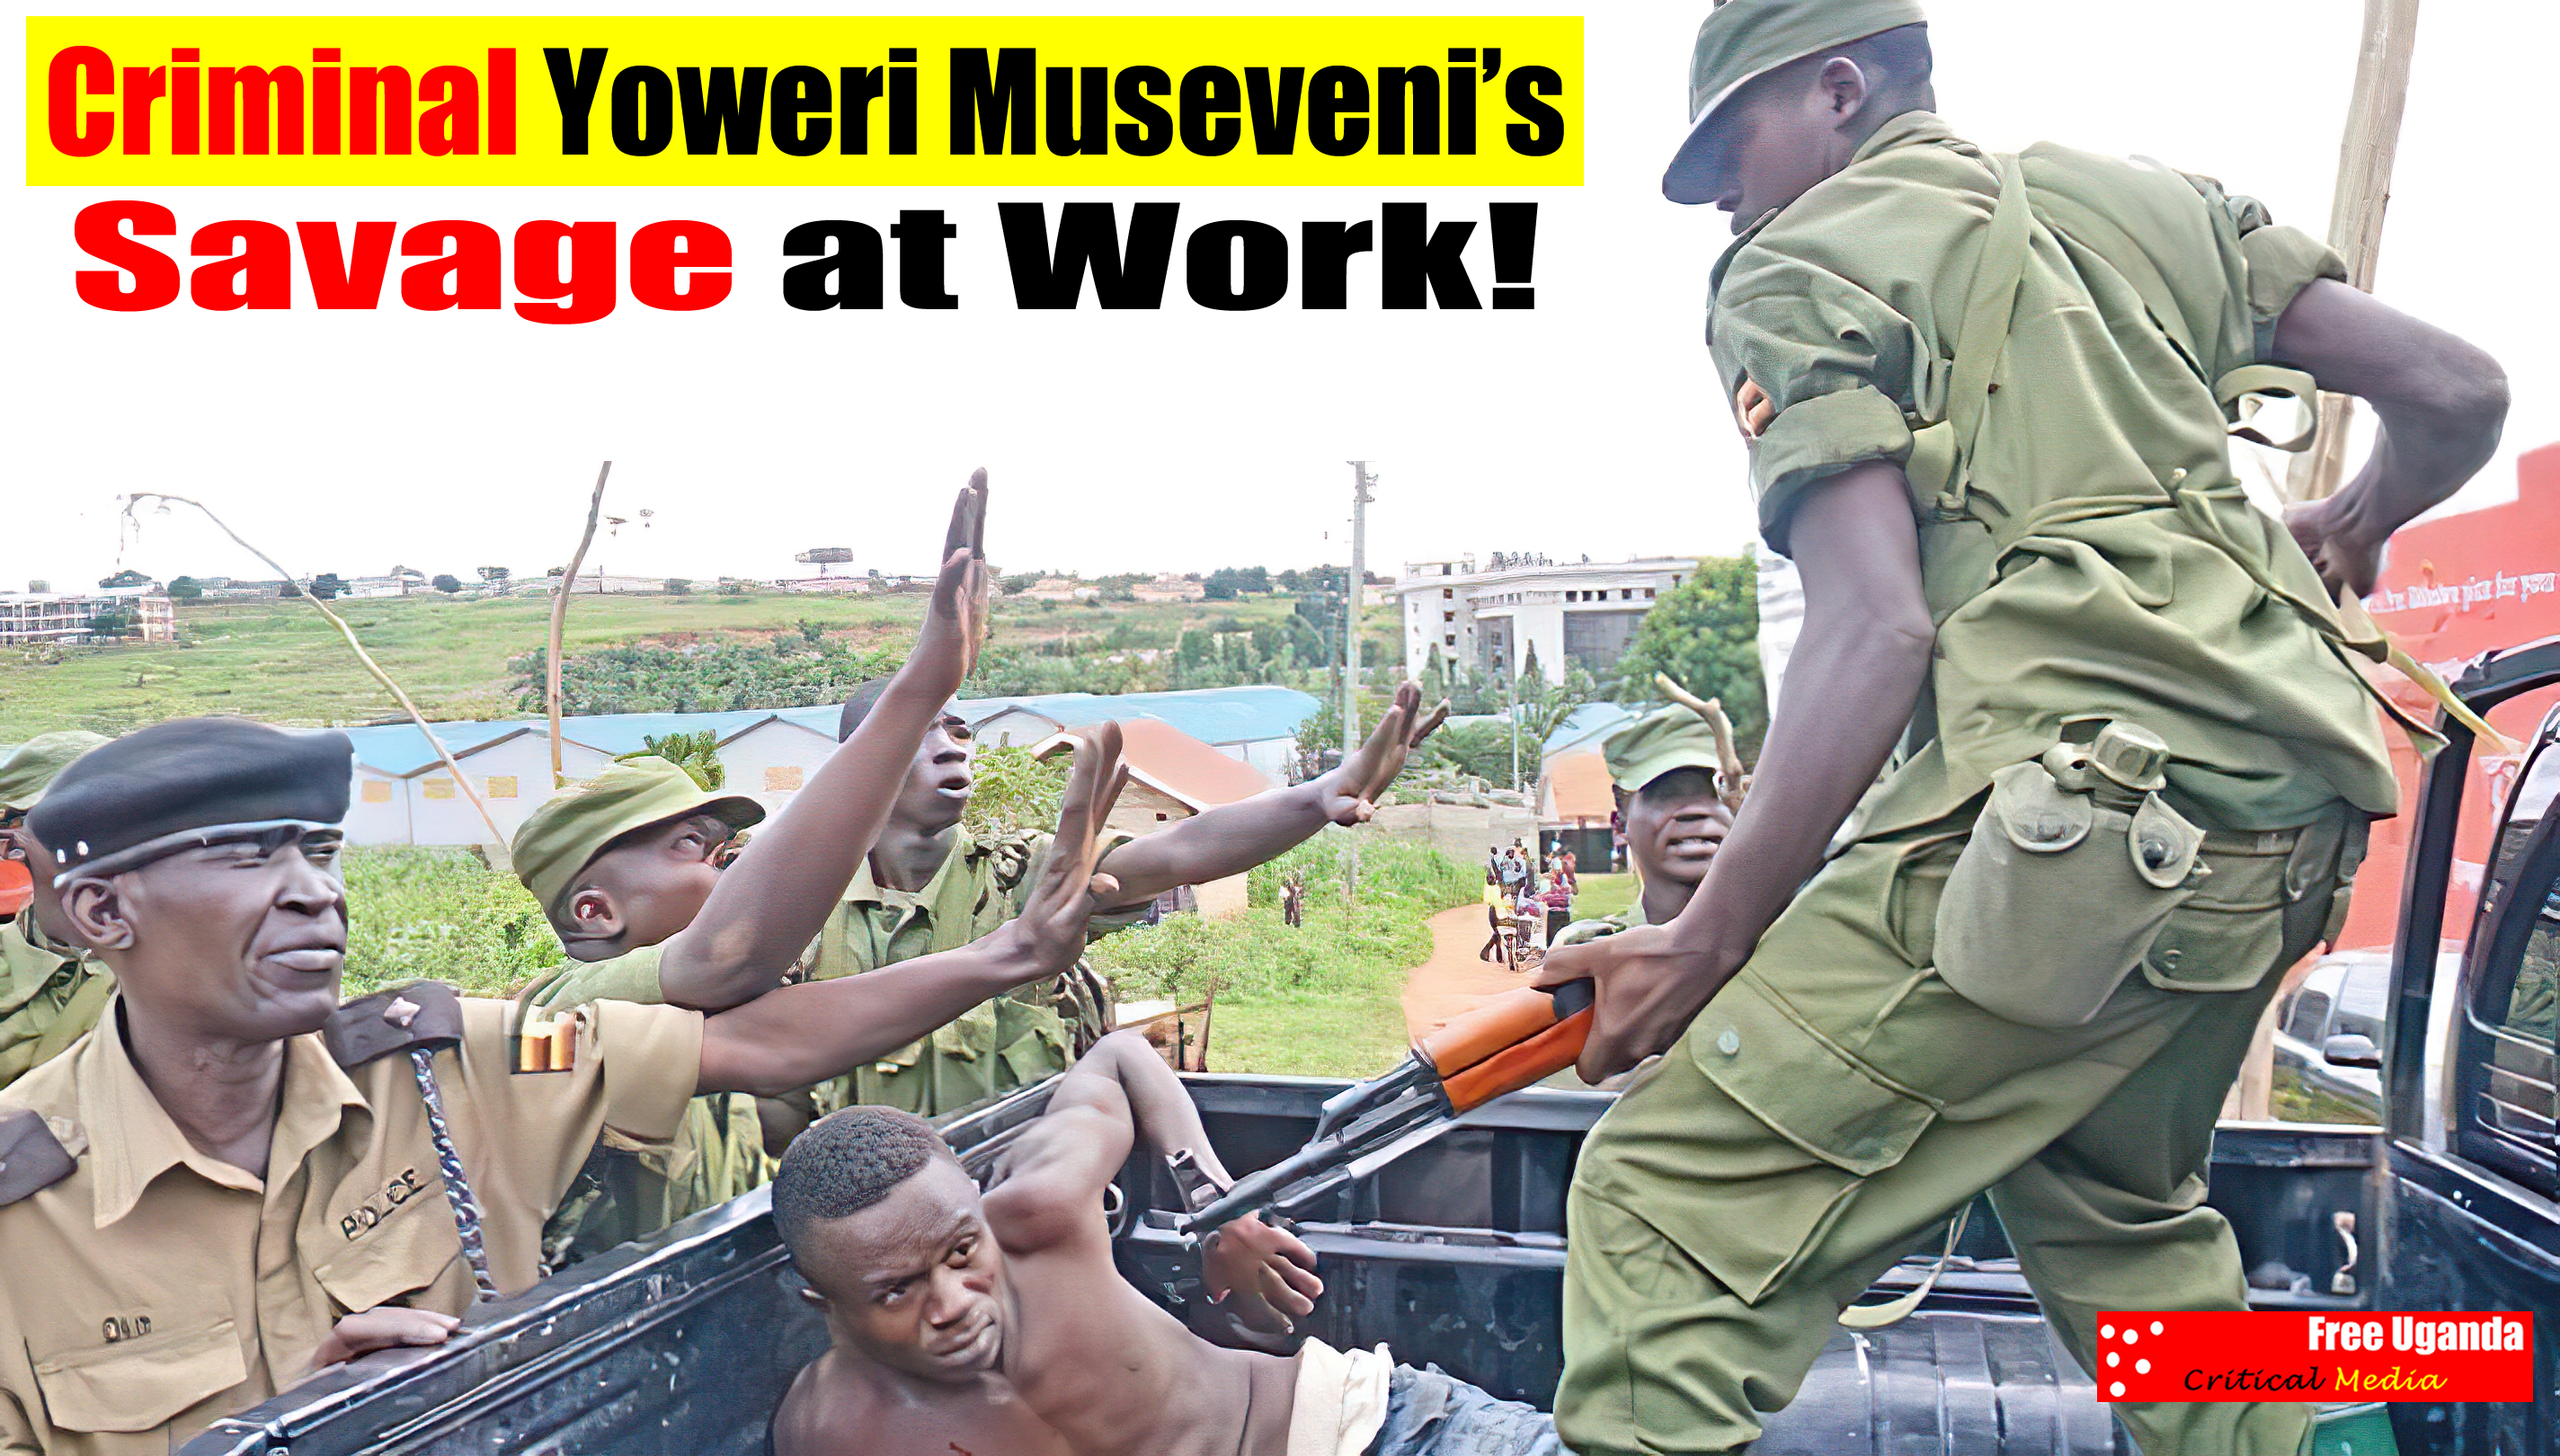 Ugandans continue to be under siege